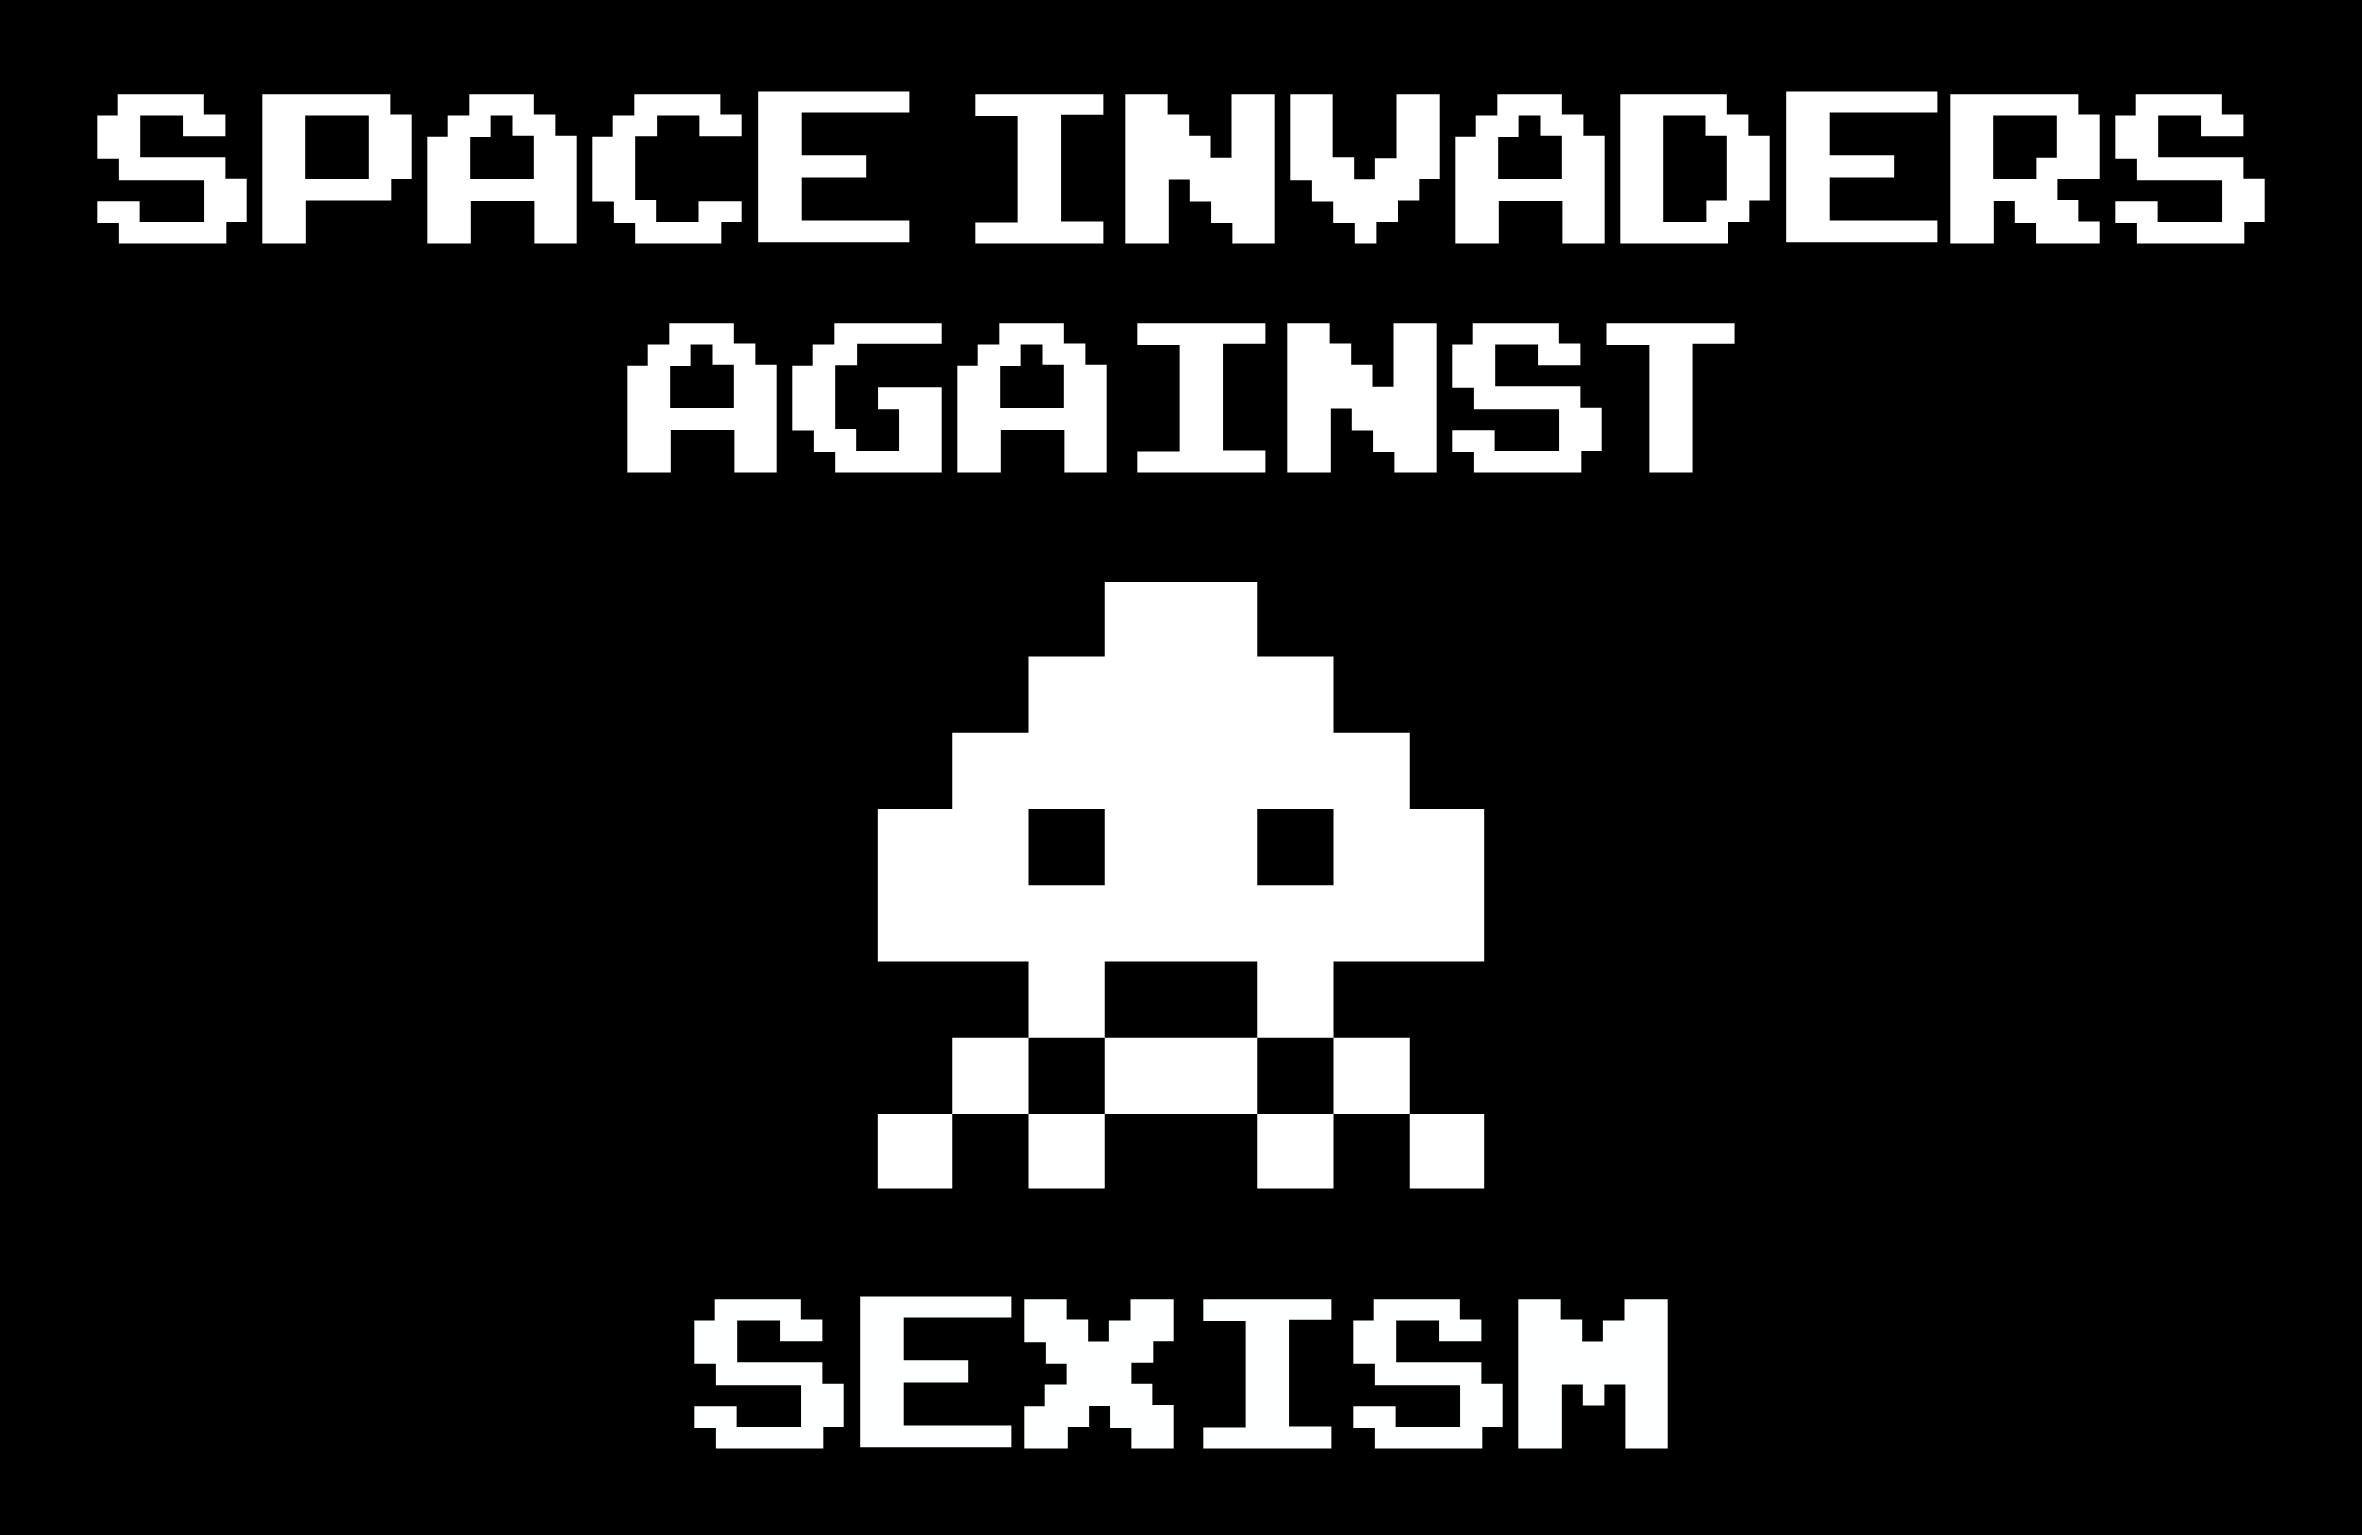 space invaders against sexism